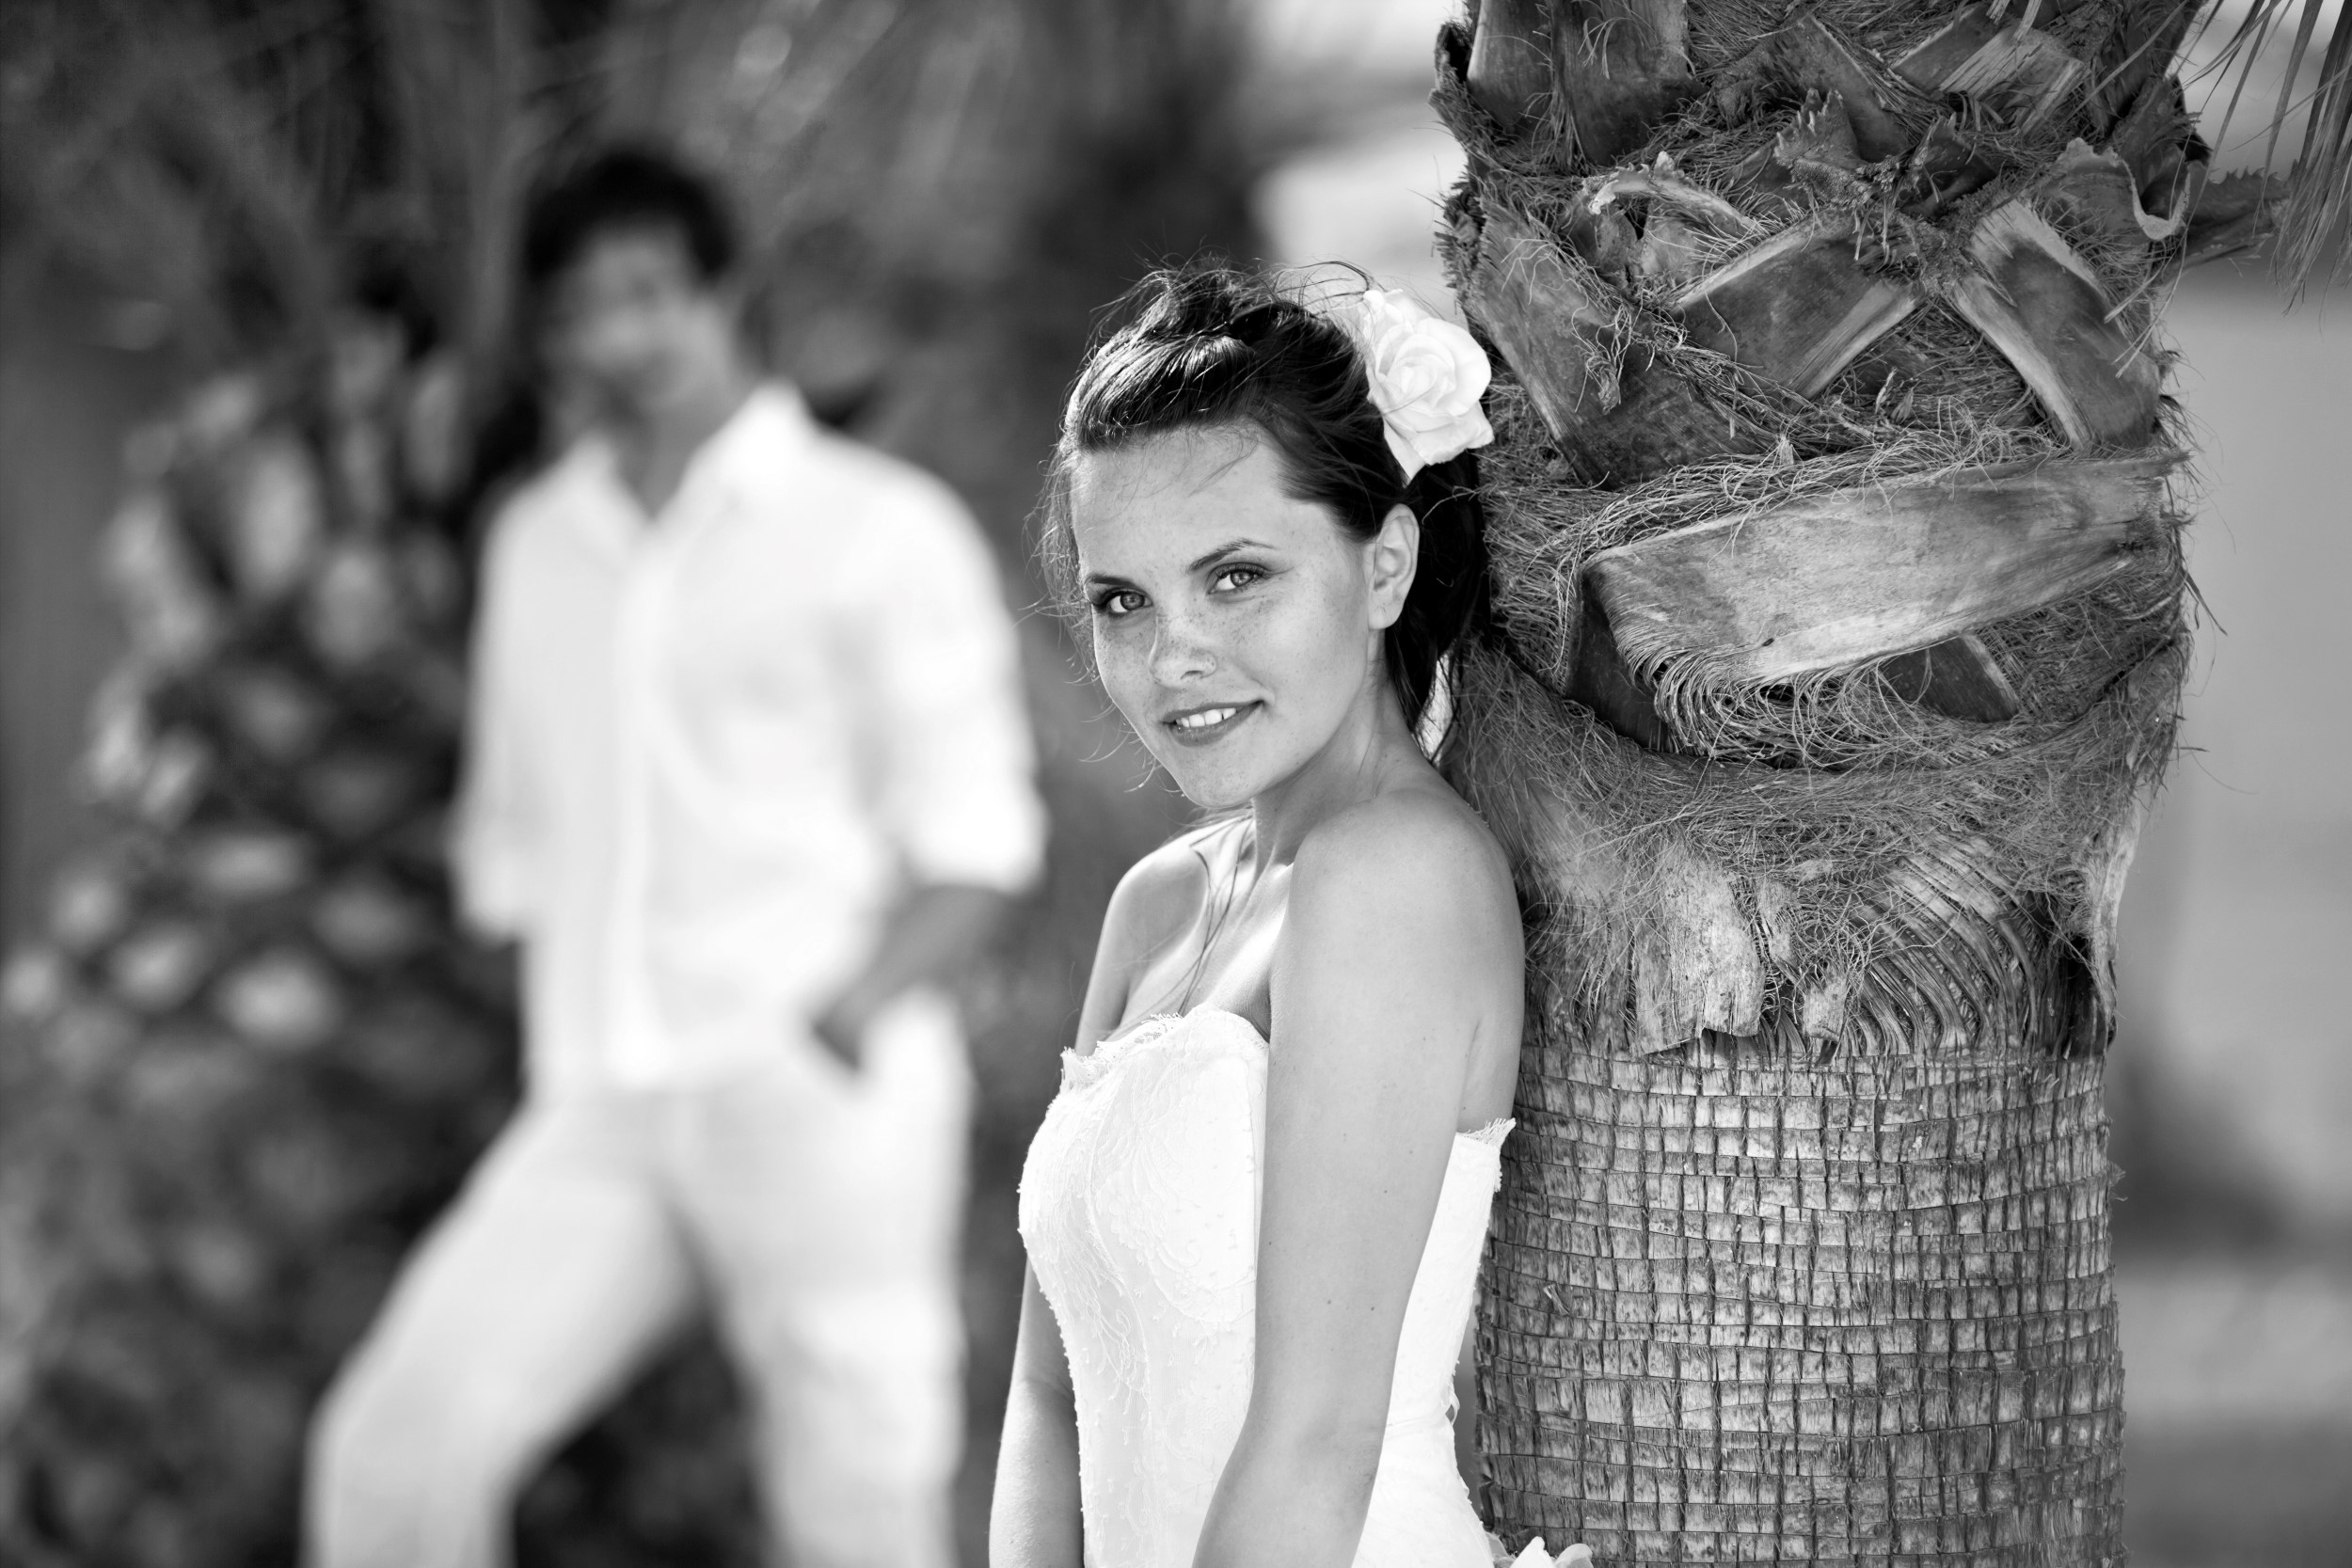 PART 2 WEDDING BEACH COUPLES PORTRAITS COLOUR AND BLACK AND WHITE 003832 (Custom)